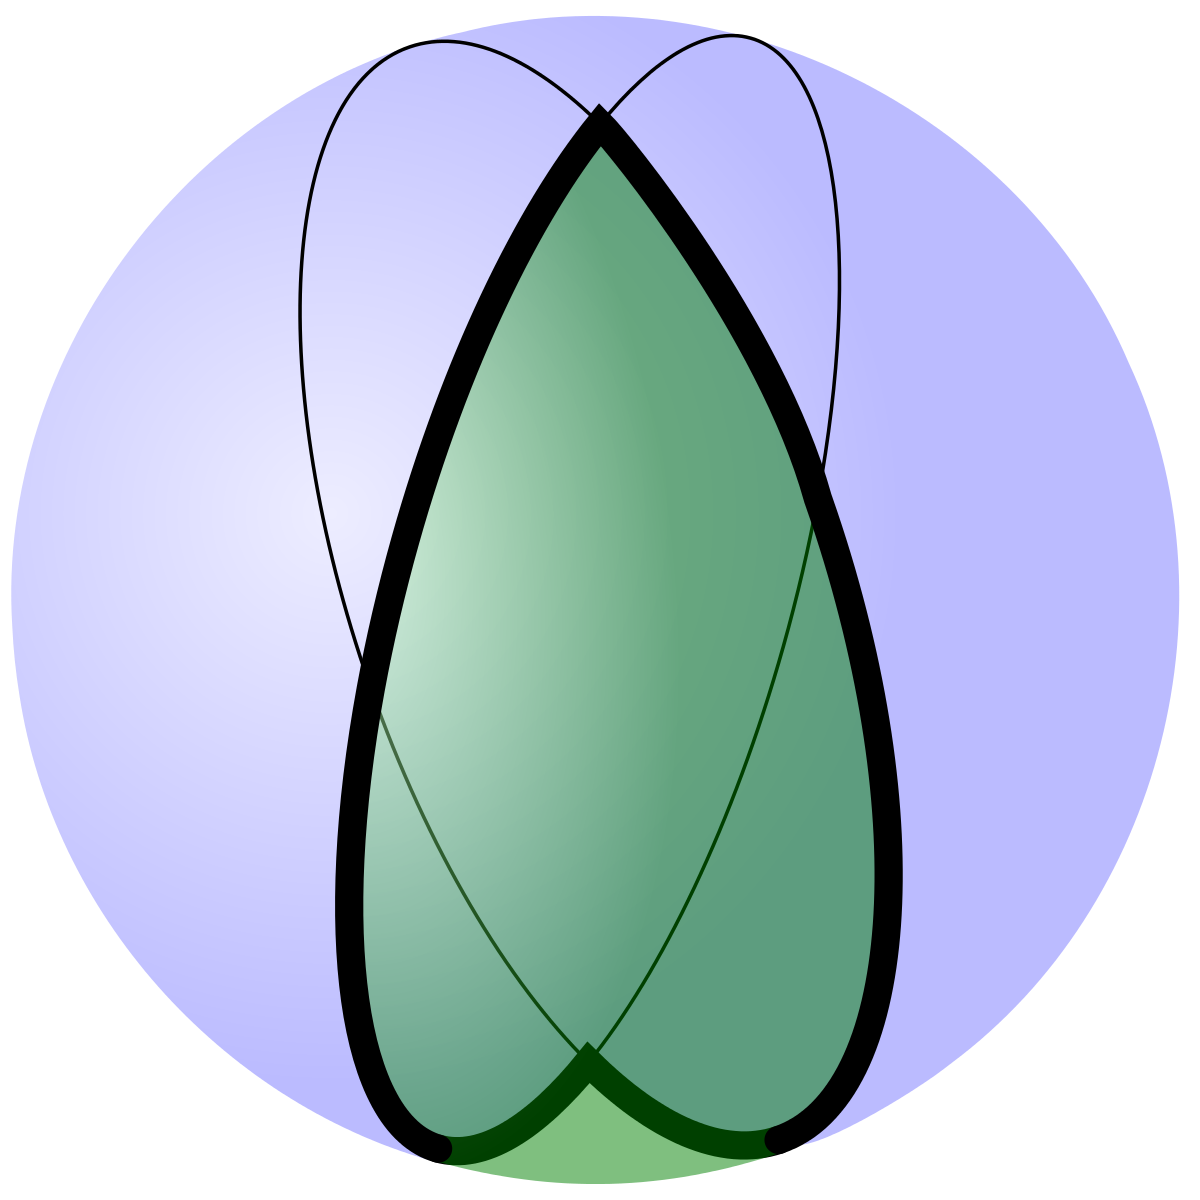 Spherical lune wikipedia . Cube clipart sphere